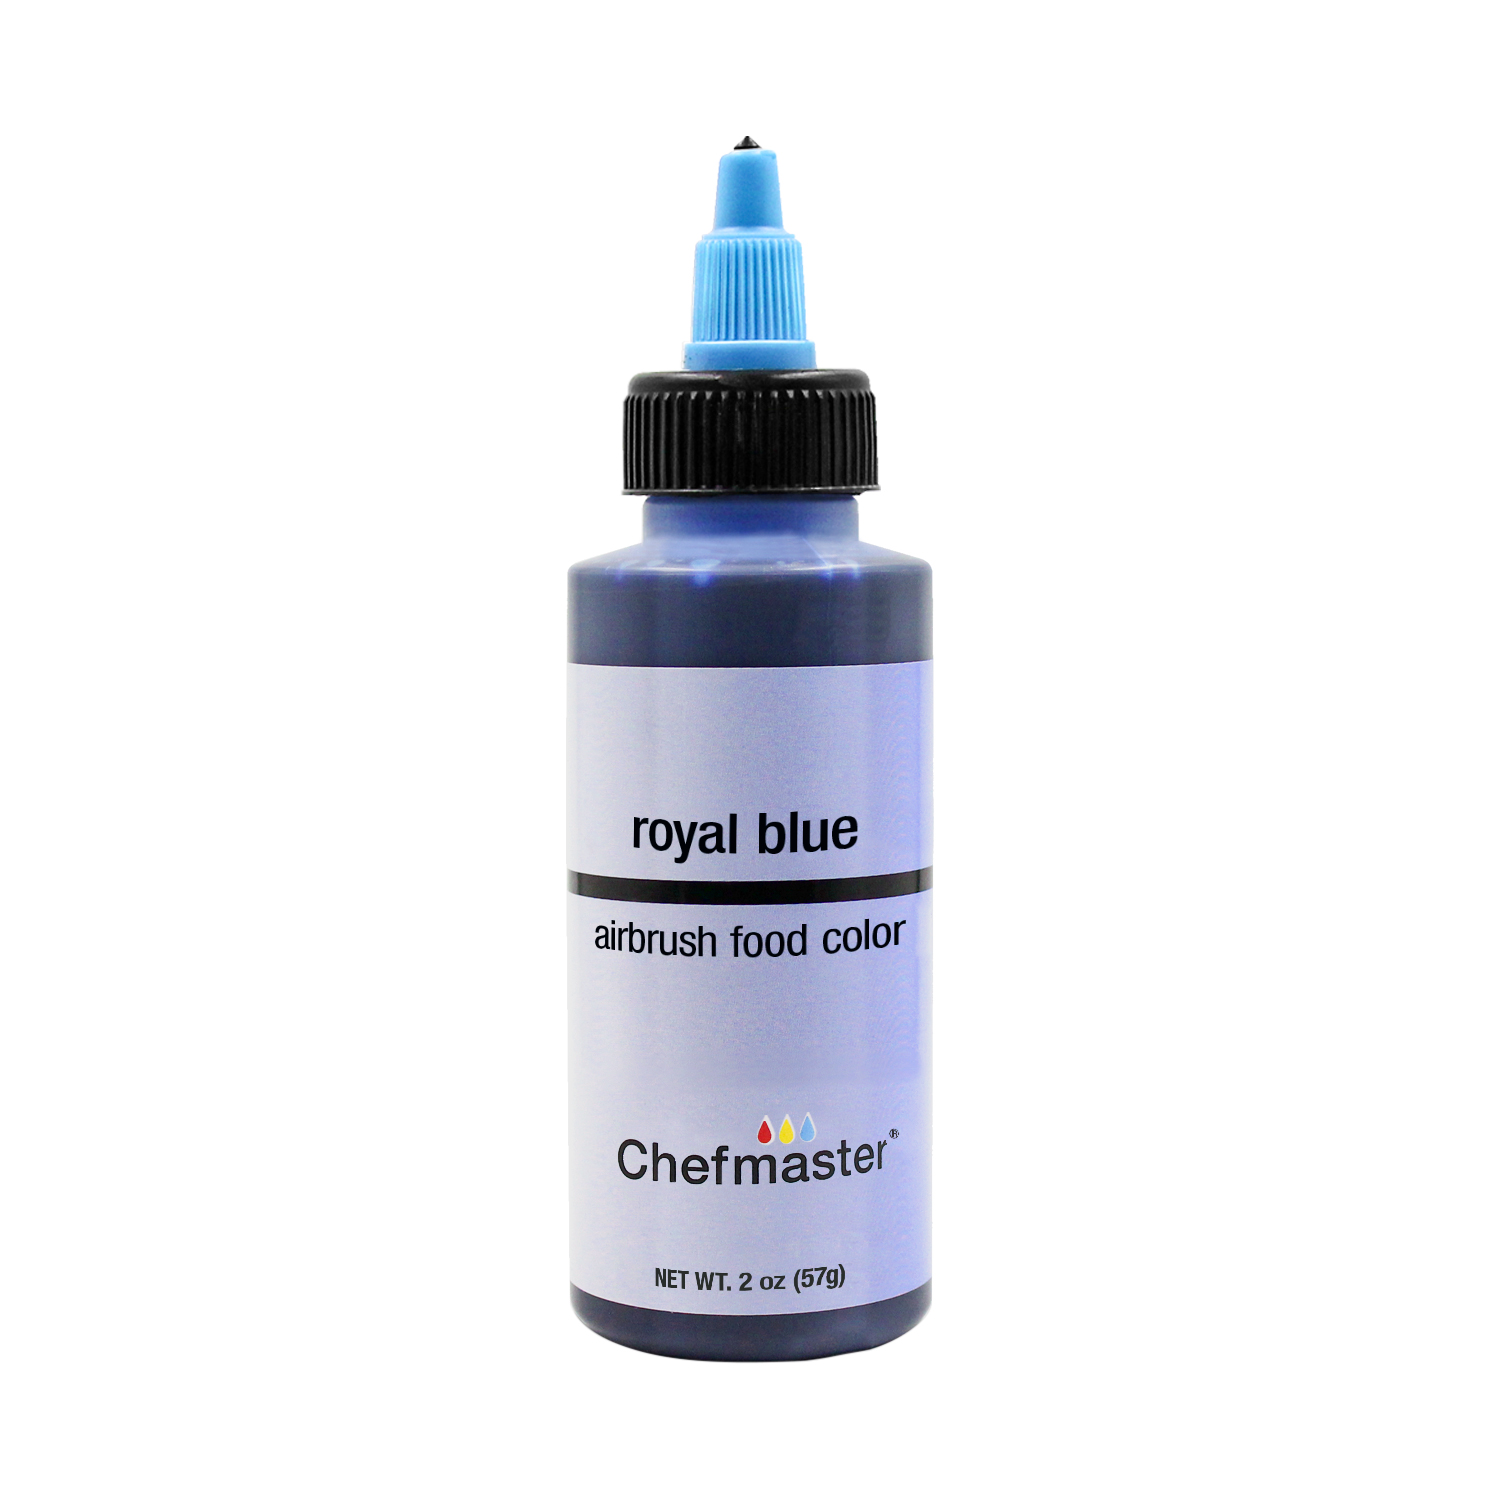 Details about Chefmaster 2-Ounce Royal Blue Airbrush Cake Decorating Food  Color